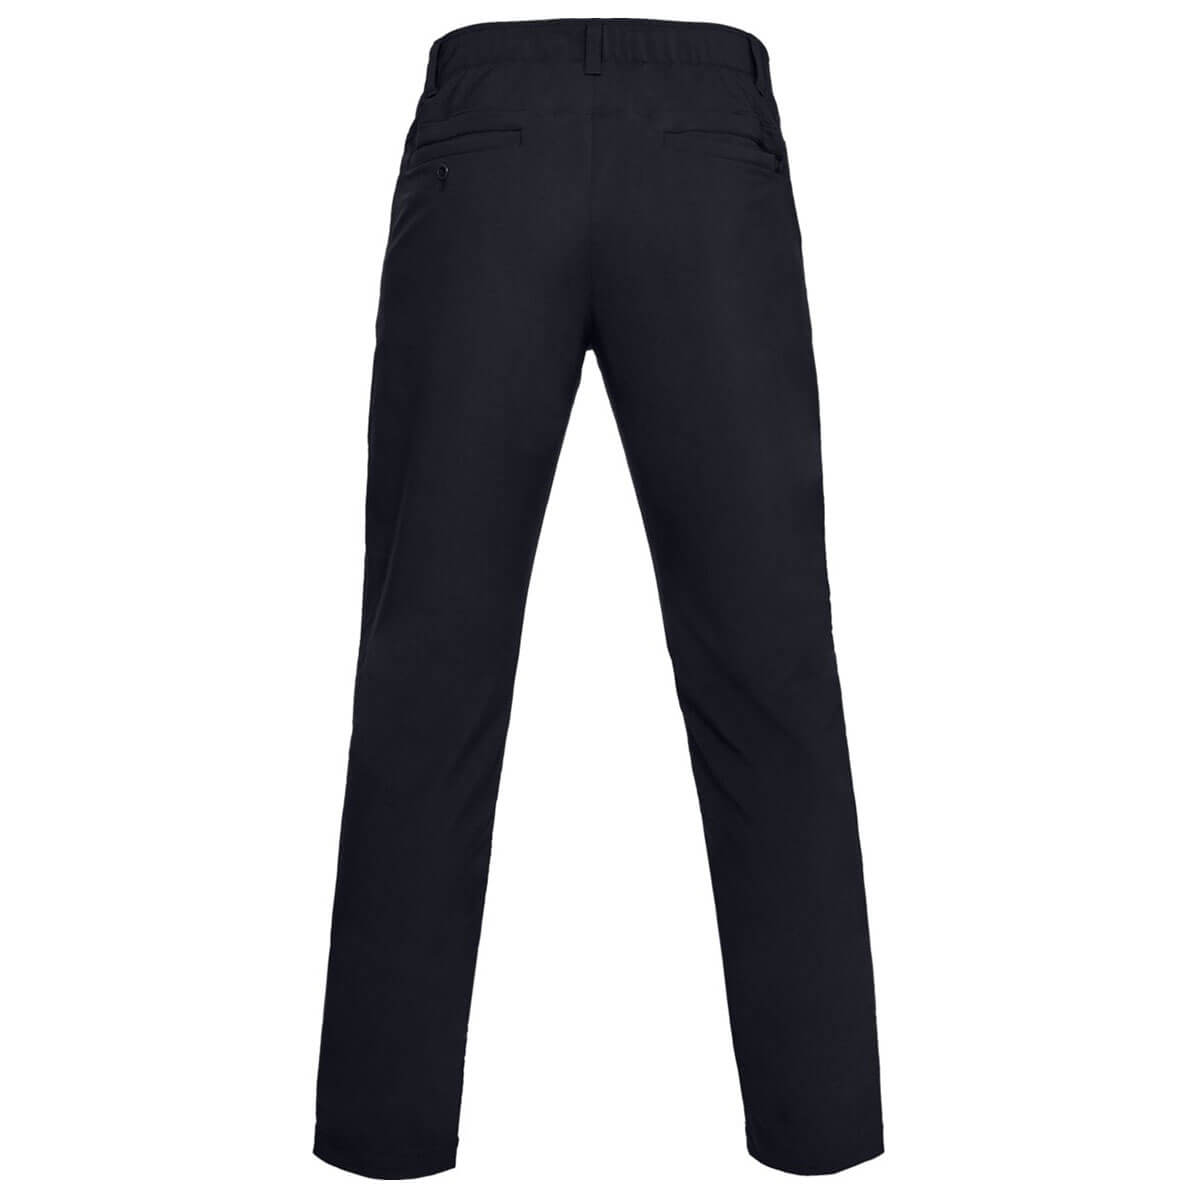 Under-Armour-Mens-2019-EU-Performance-Slim-Taper-Soft-Stretch-Golf-Trousers thumbnail 9